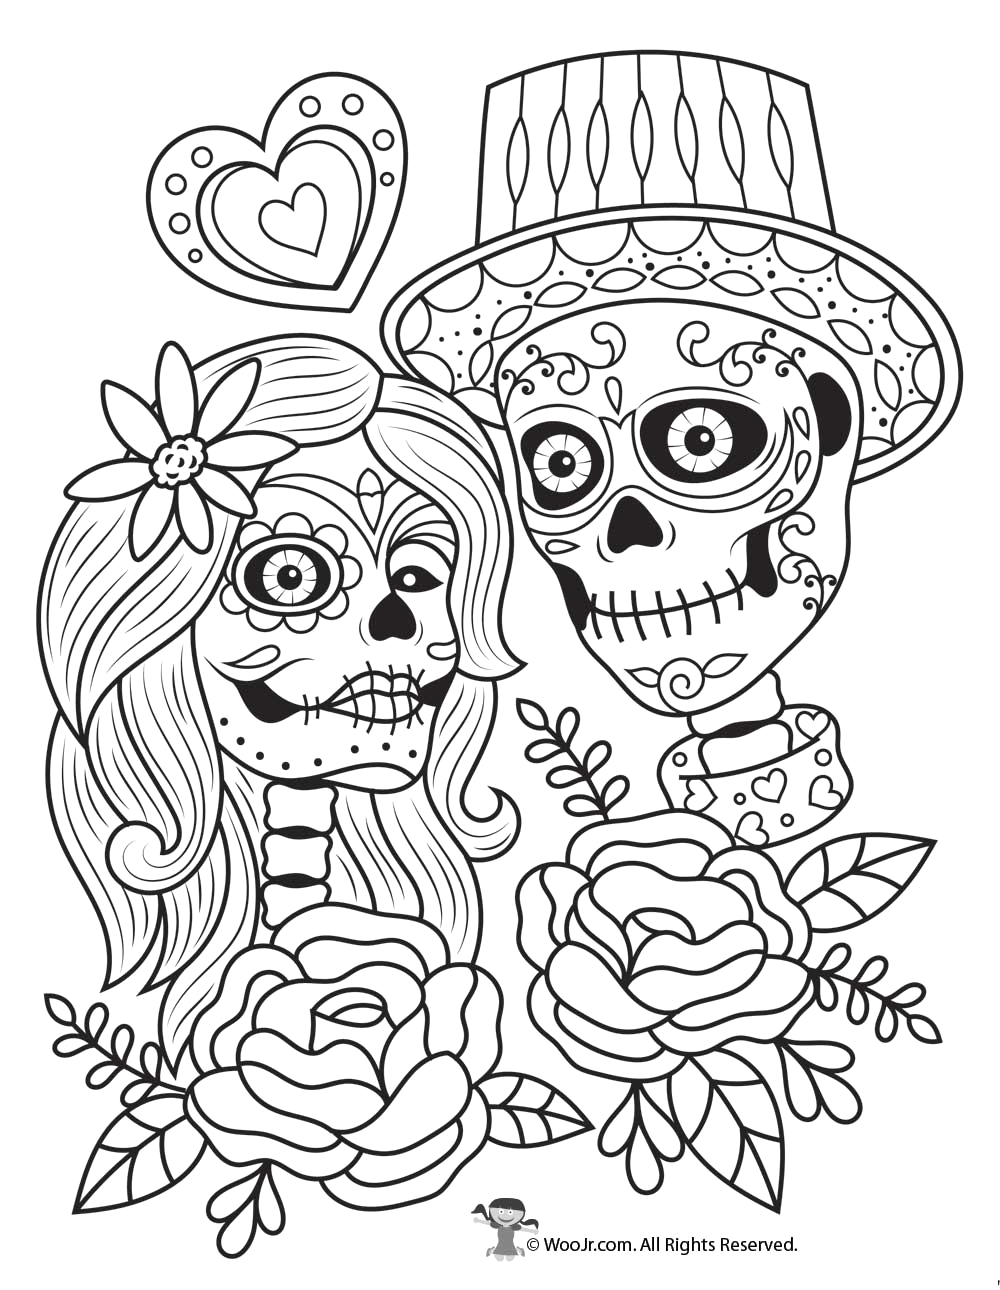 Coloring Pages for Adults Day Of the Dead the Best Coloring Pages for Adults Day the Dead Best